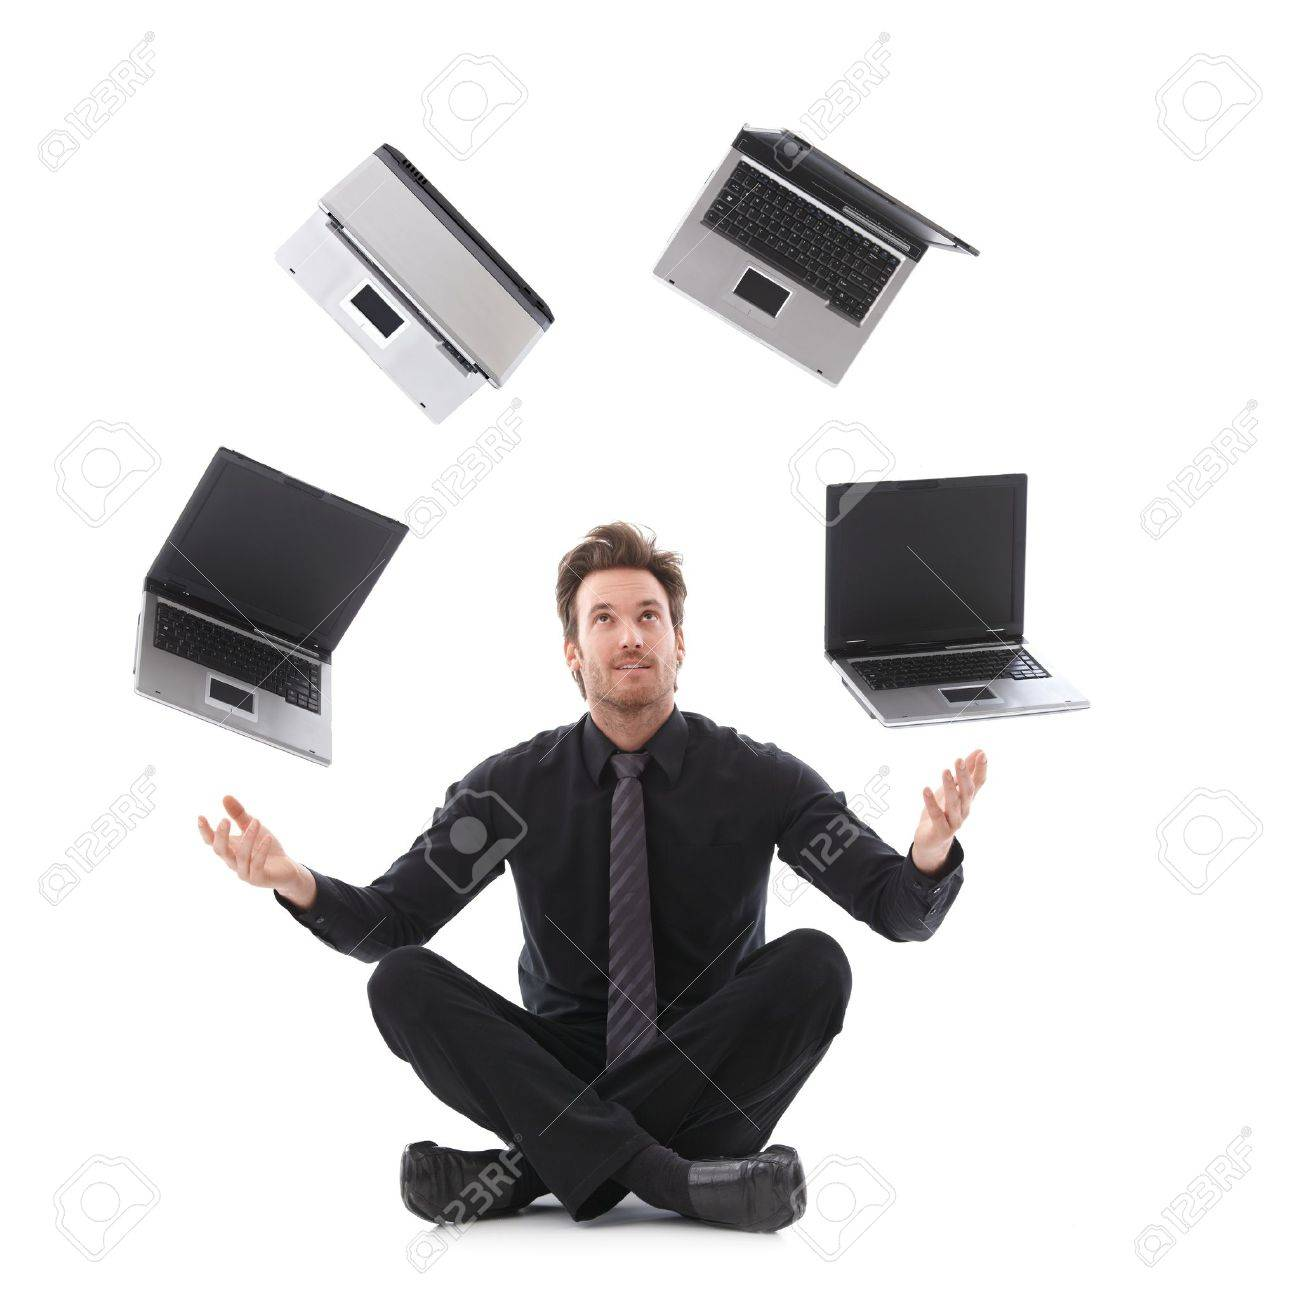 Handsome businessman in tailor seat juggling with laptops. Stock Photo - 9434672